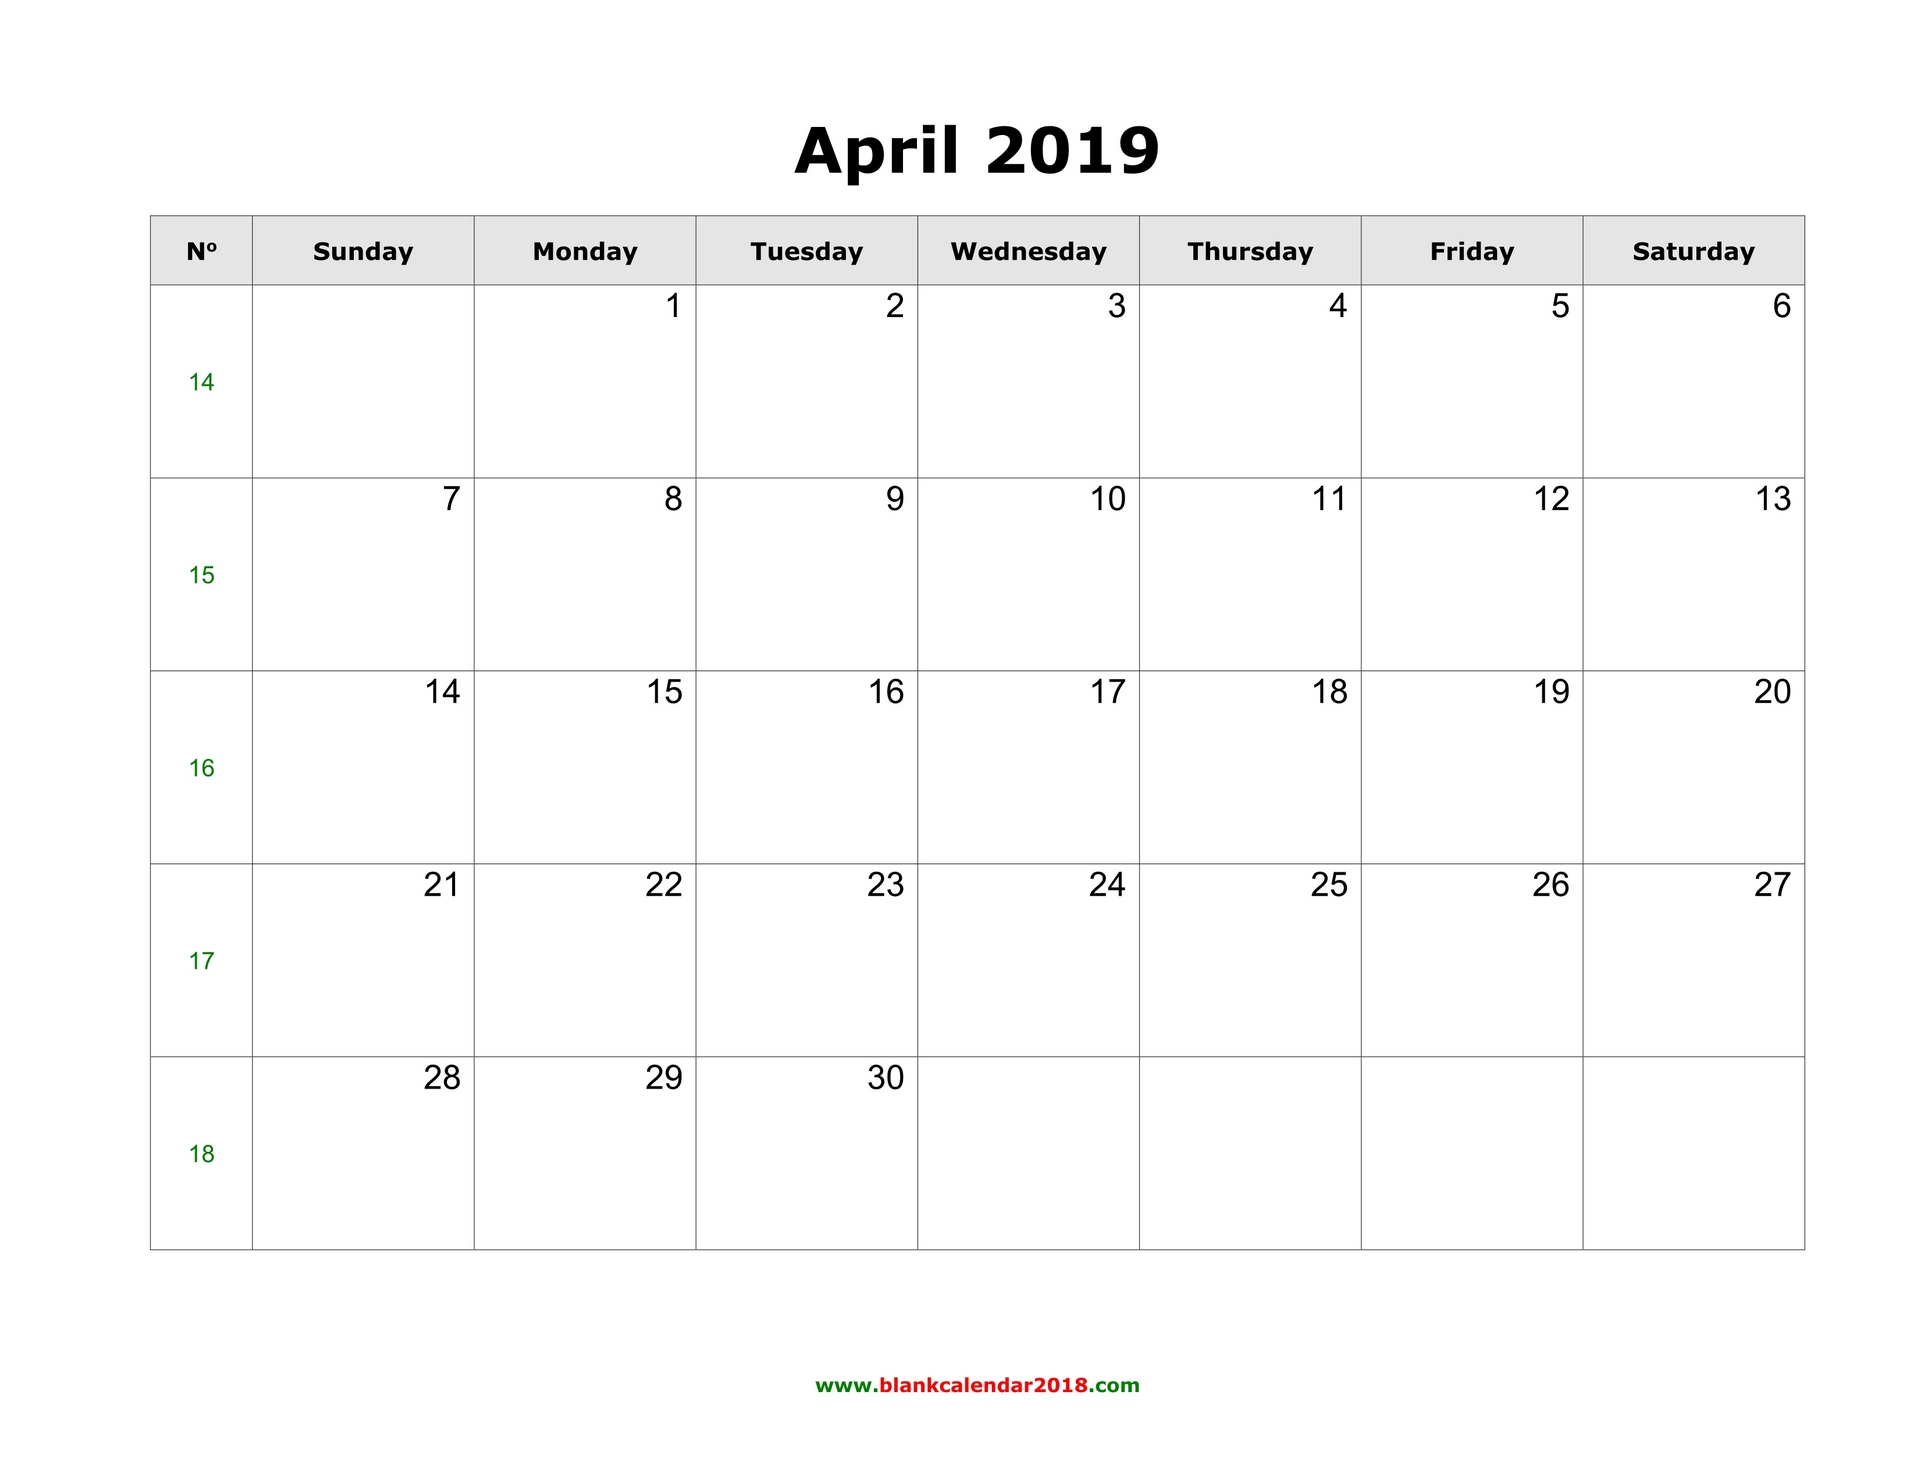 Blank Calendar For April 2019 throughout April Calendar Template